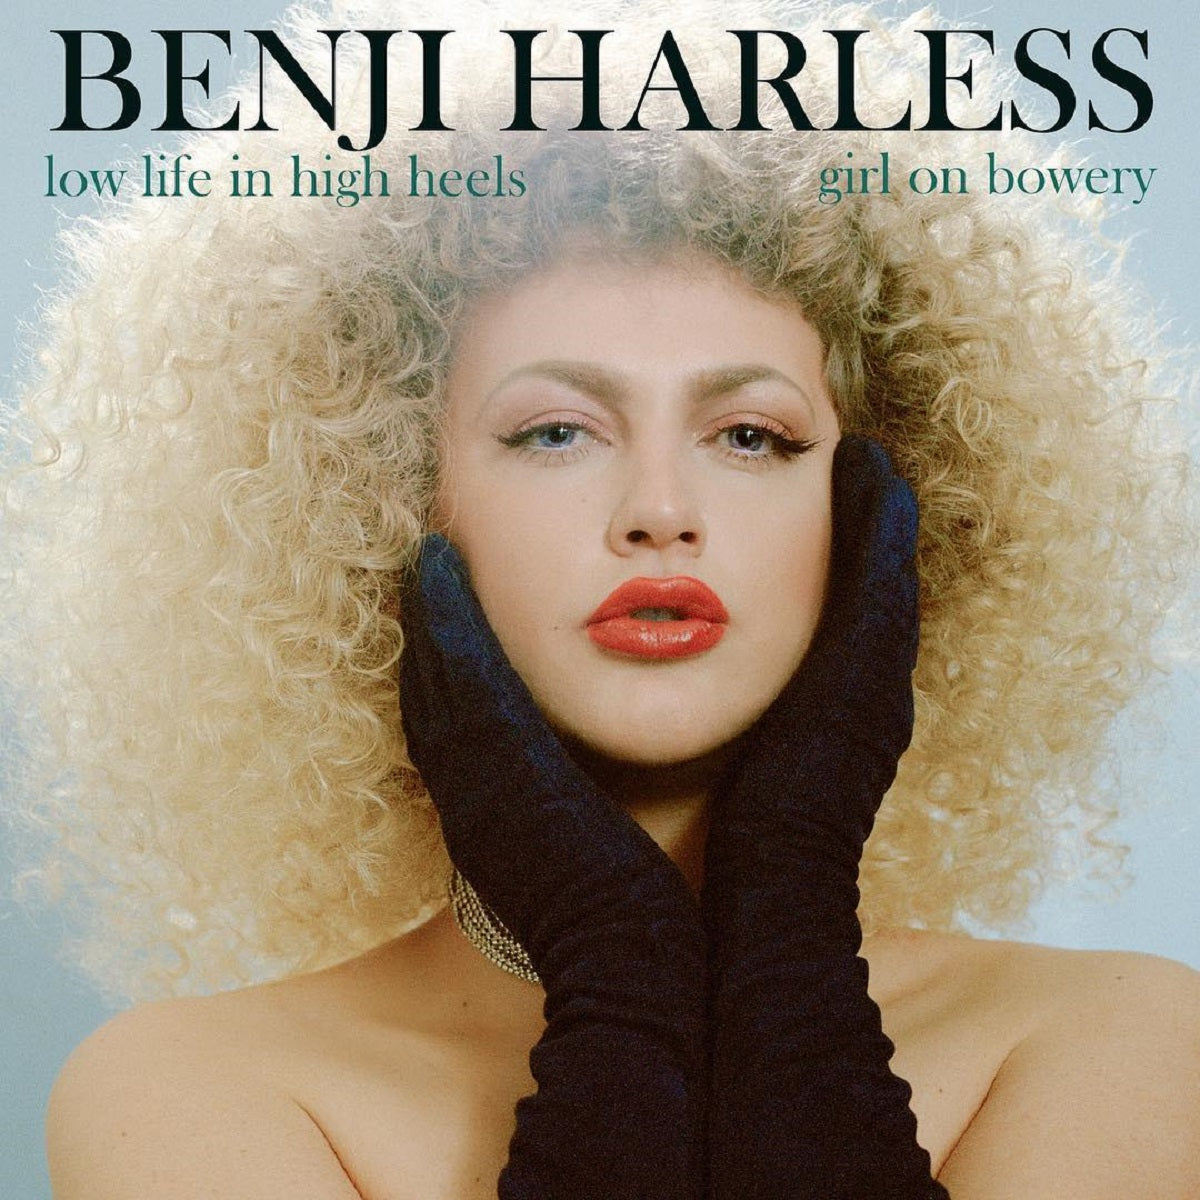 Benji Harless – 'Low Life in High Heels / Girl On Bowery'